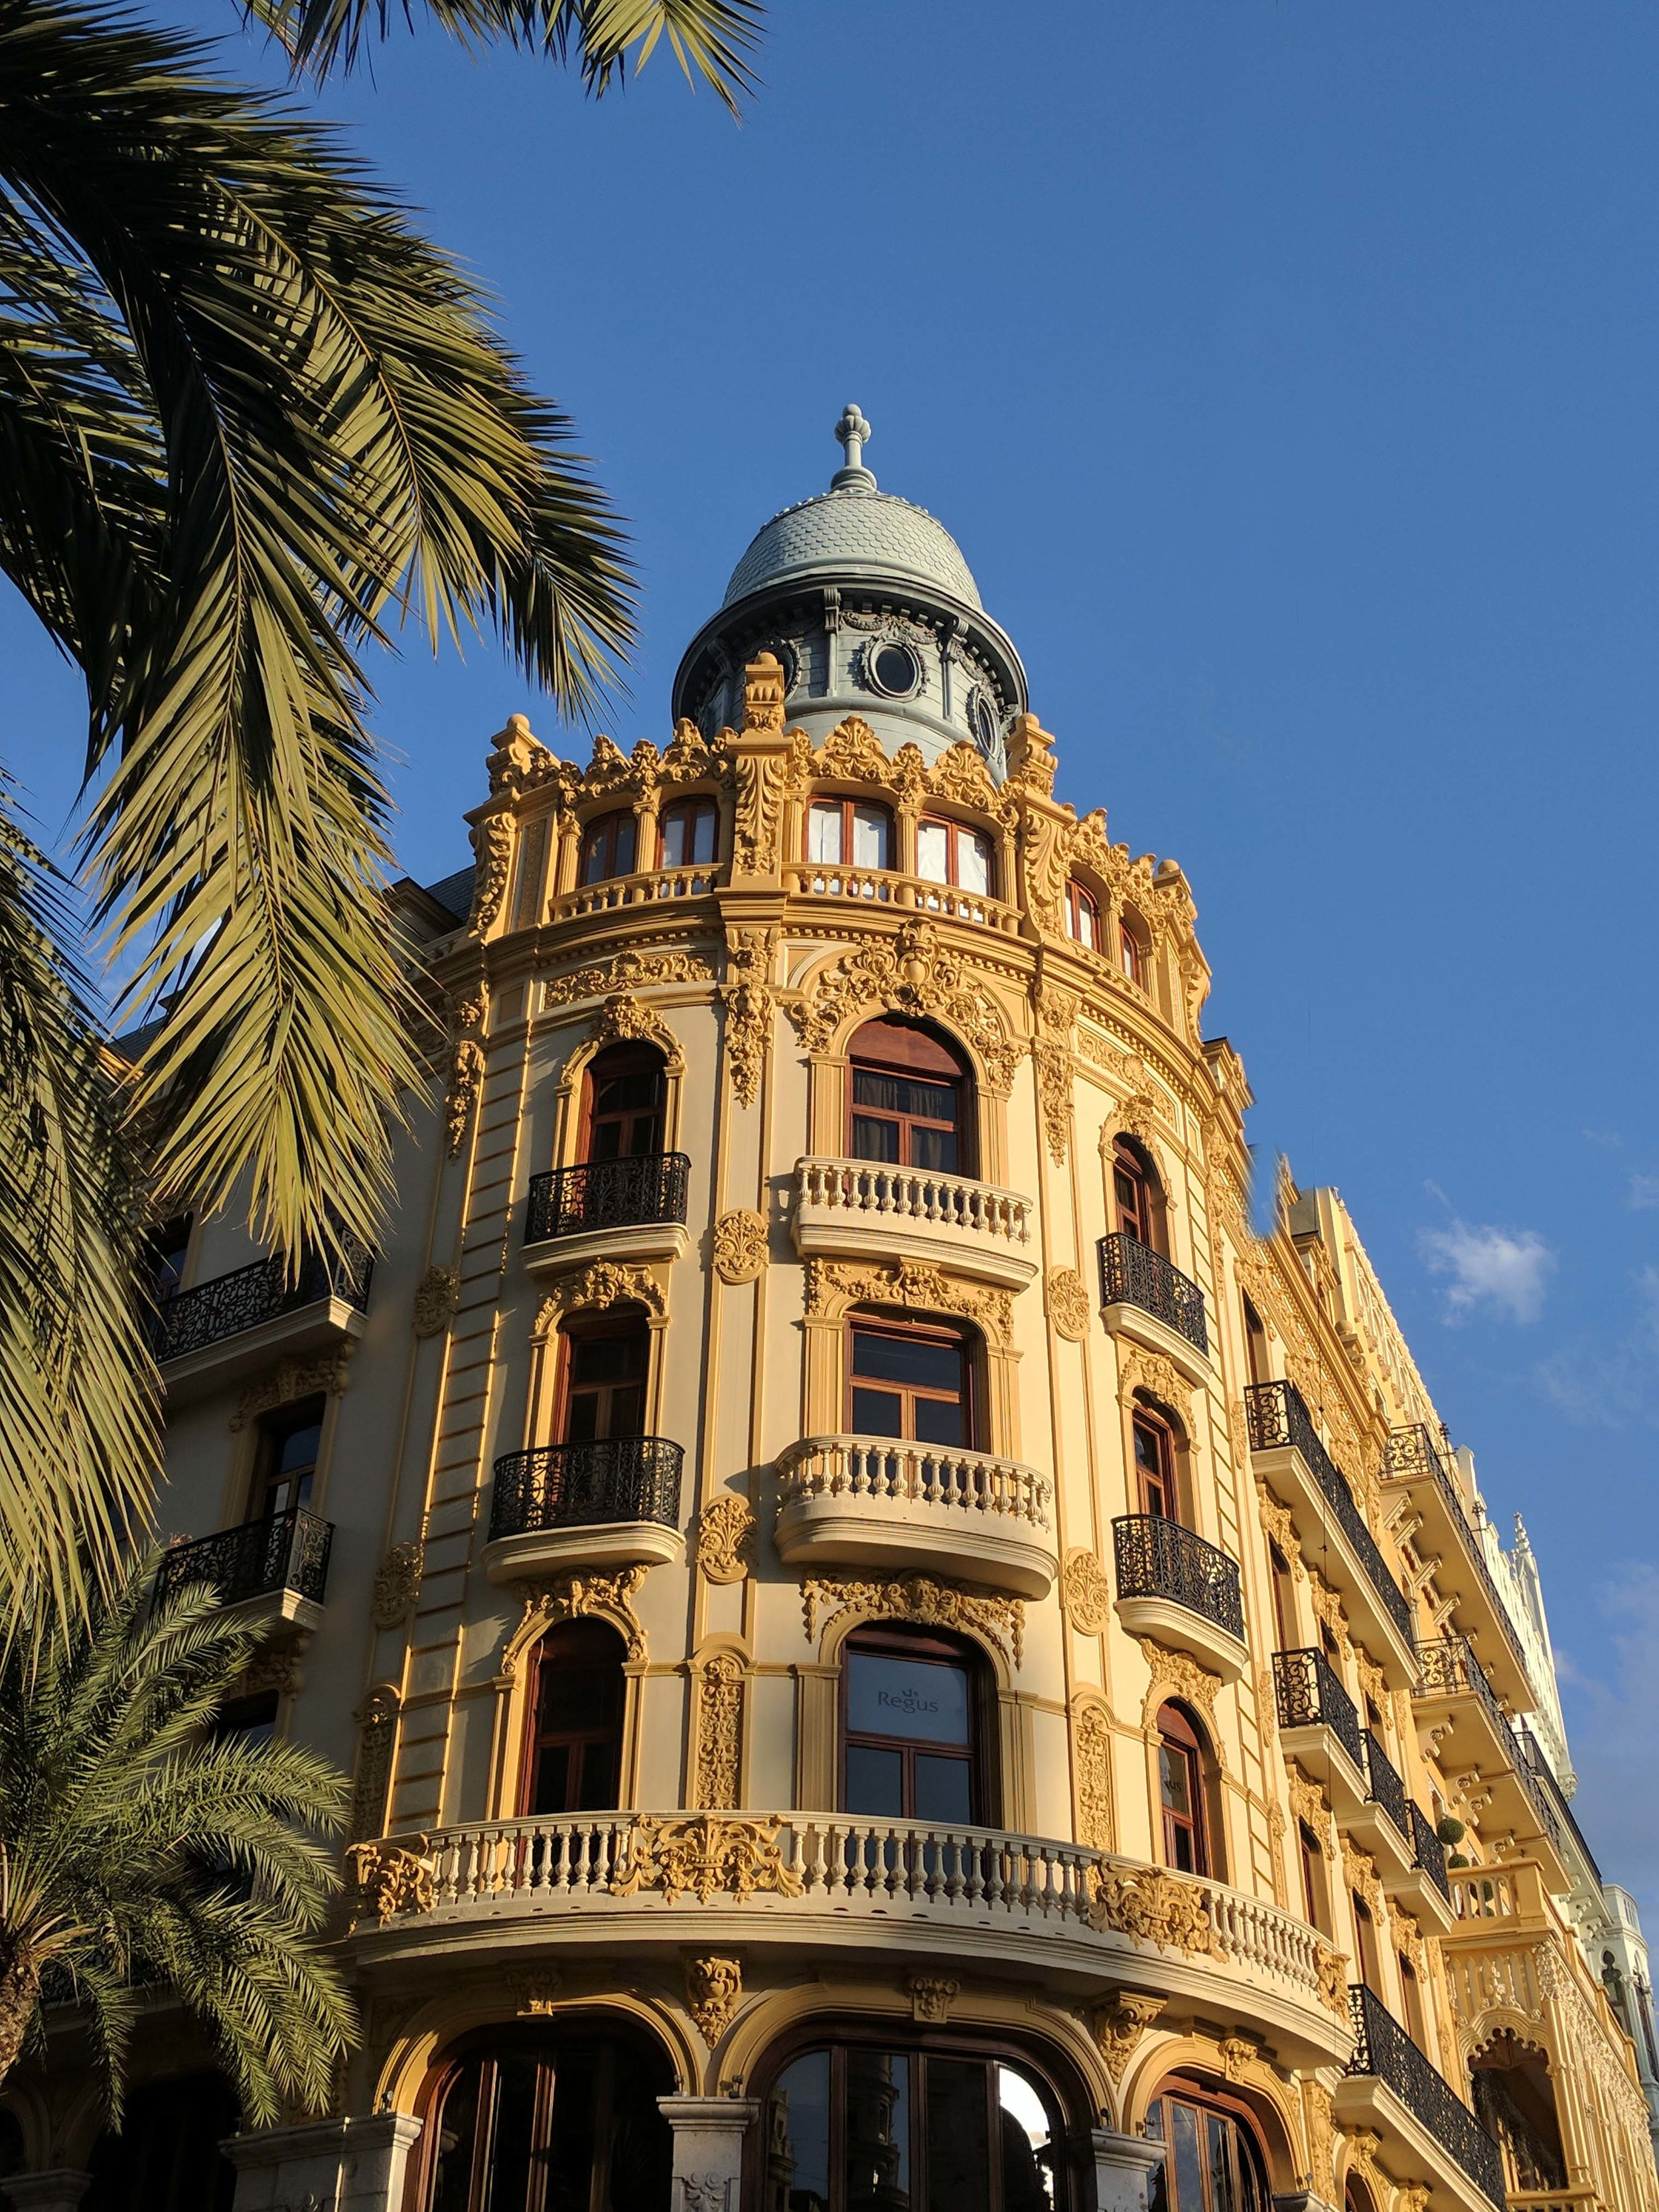 Another Beautiful Building in Valencia